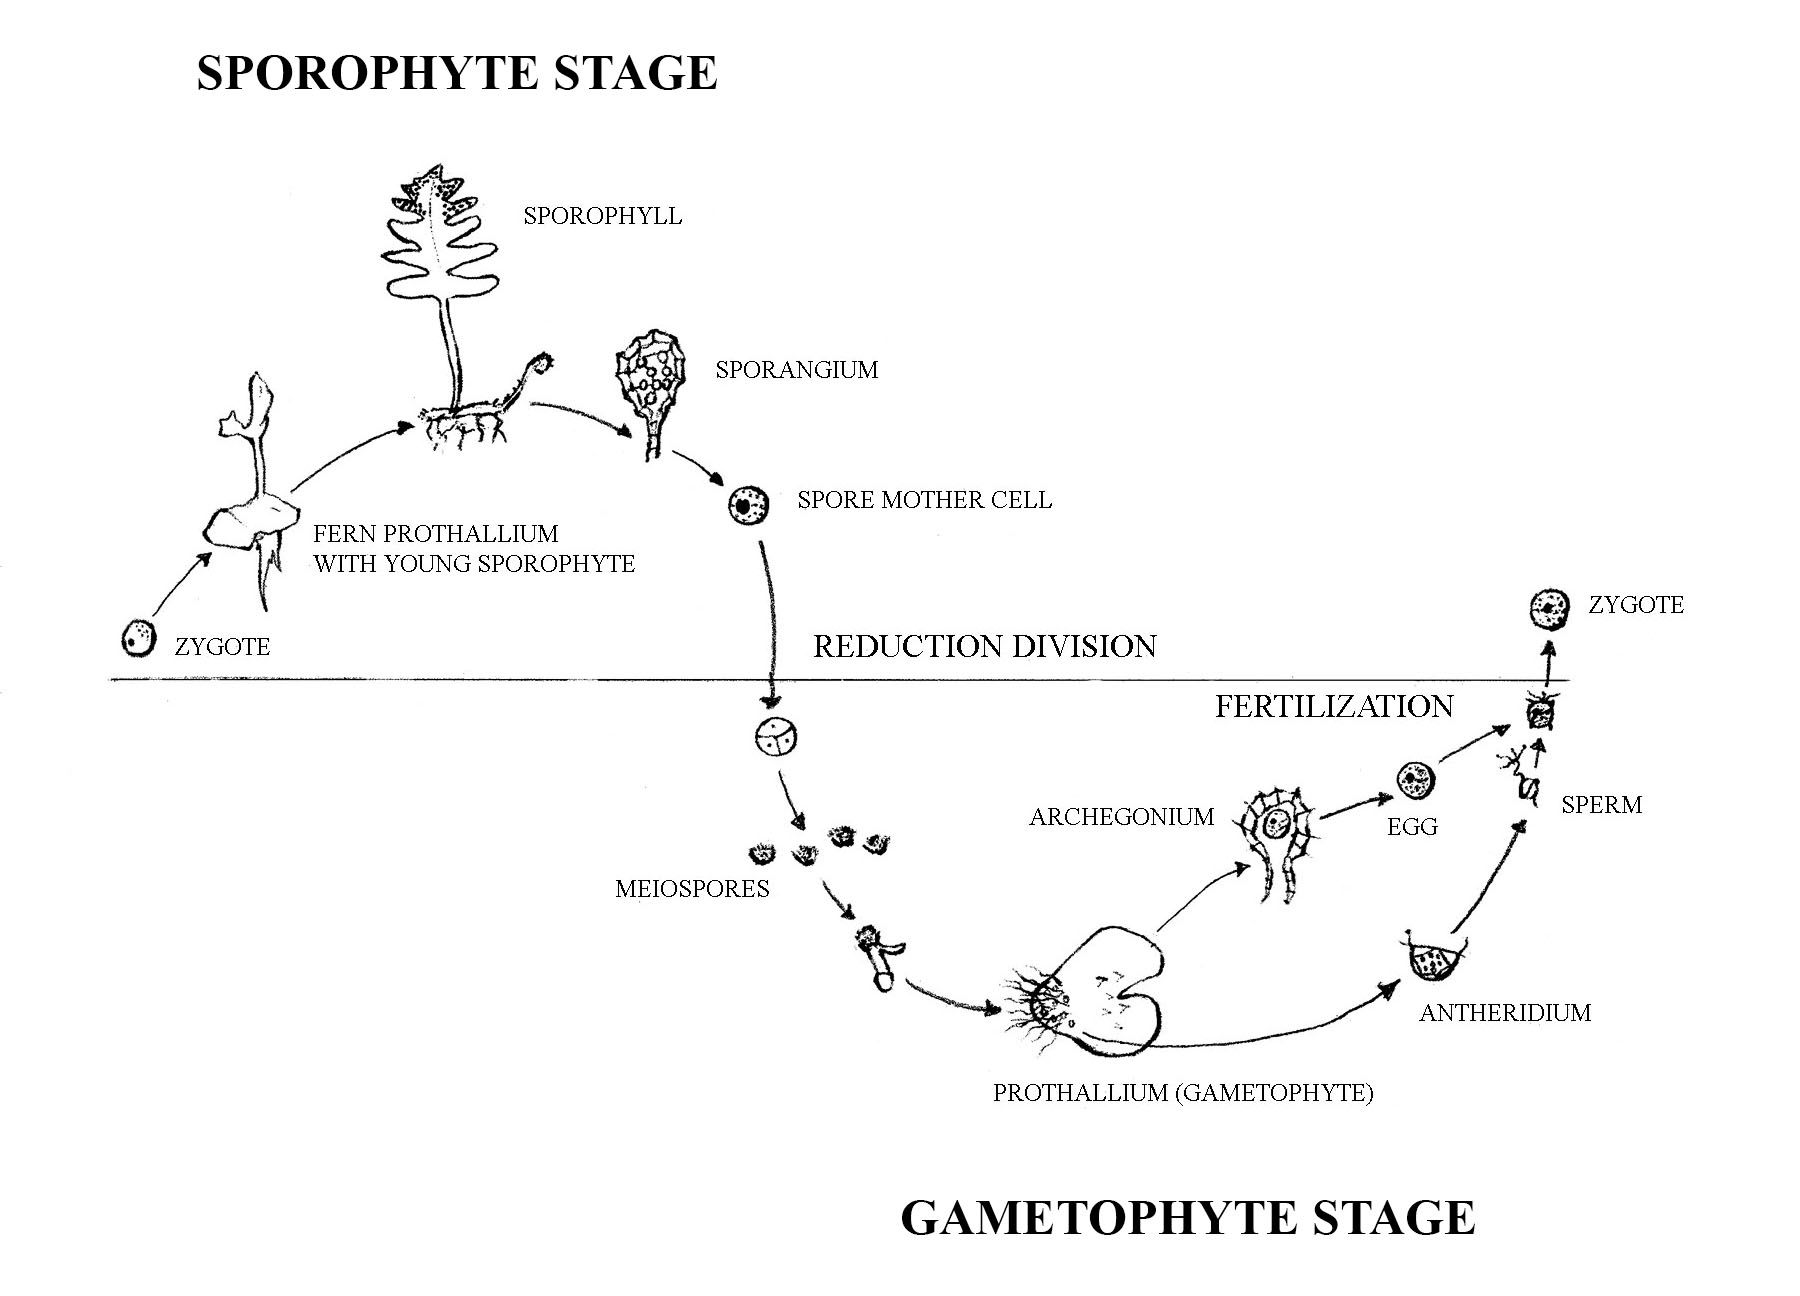 Fern Life Cycle Sporophyte Stage Zygote To Fern Prothallium With Young Sporophyte To Sporophyll To Sporangium To Spore Mother Cell Gametophyte Stage R Vaxter